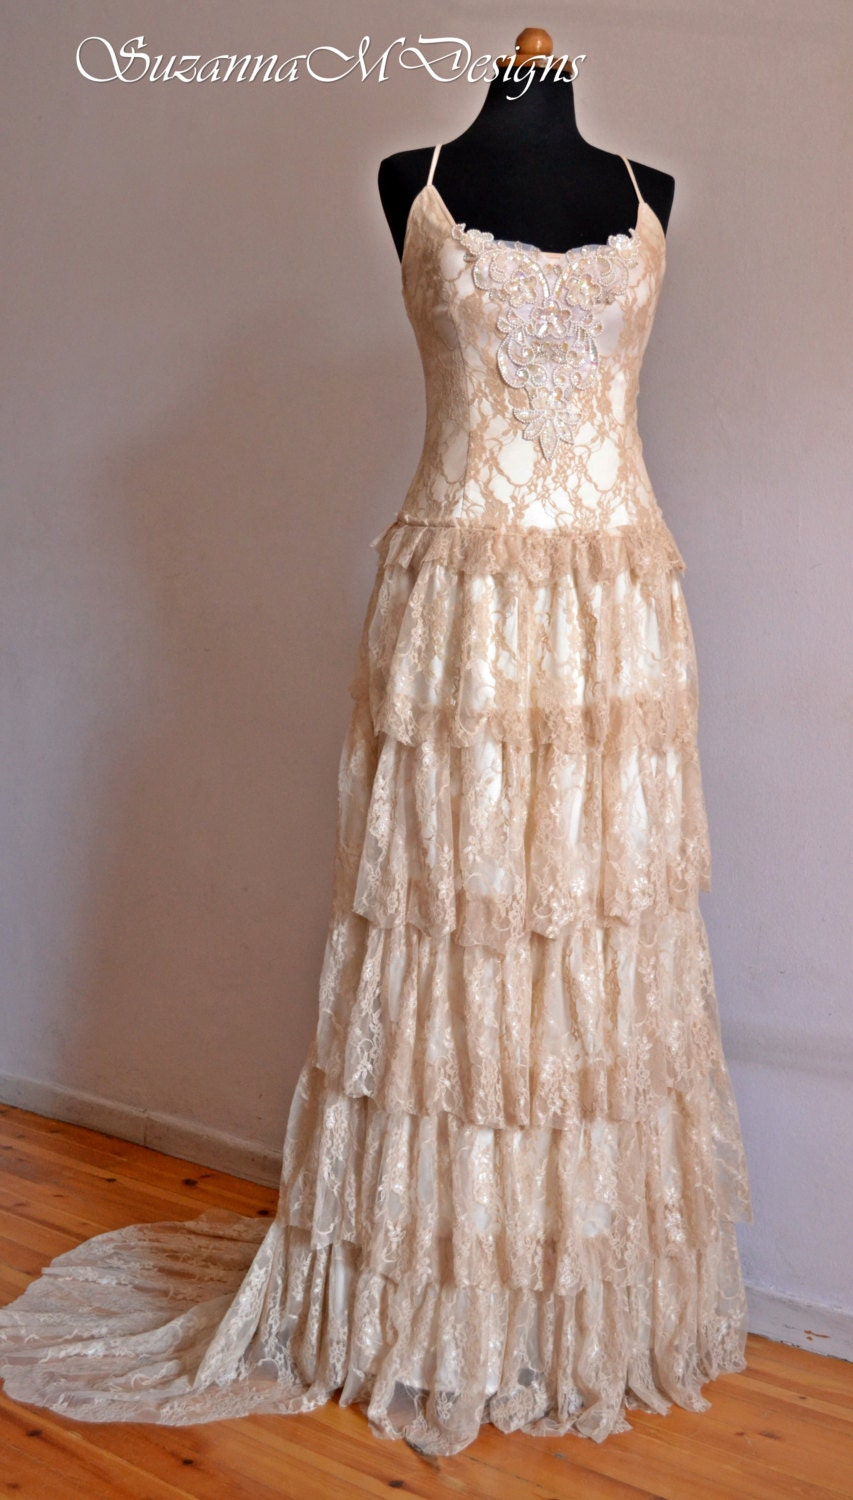 Boho Lace Wedding Dress Etsy : Boho wedding dress cream lace